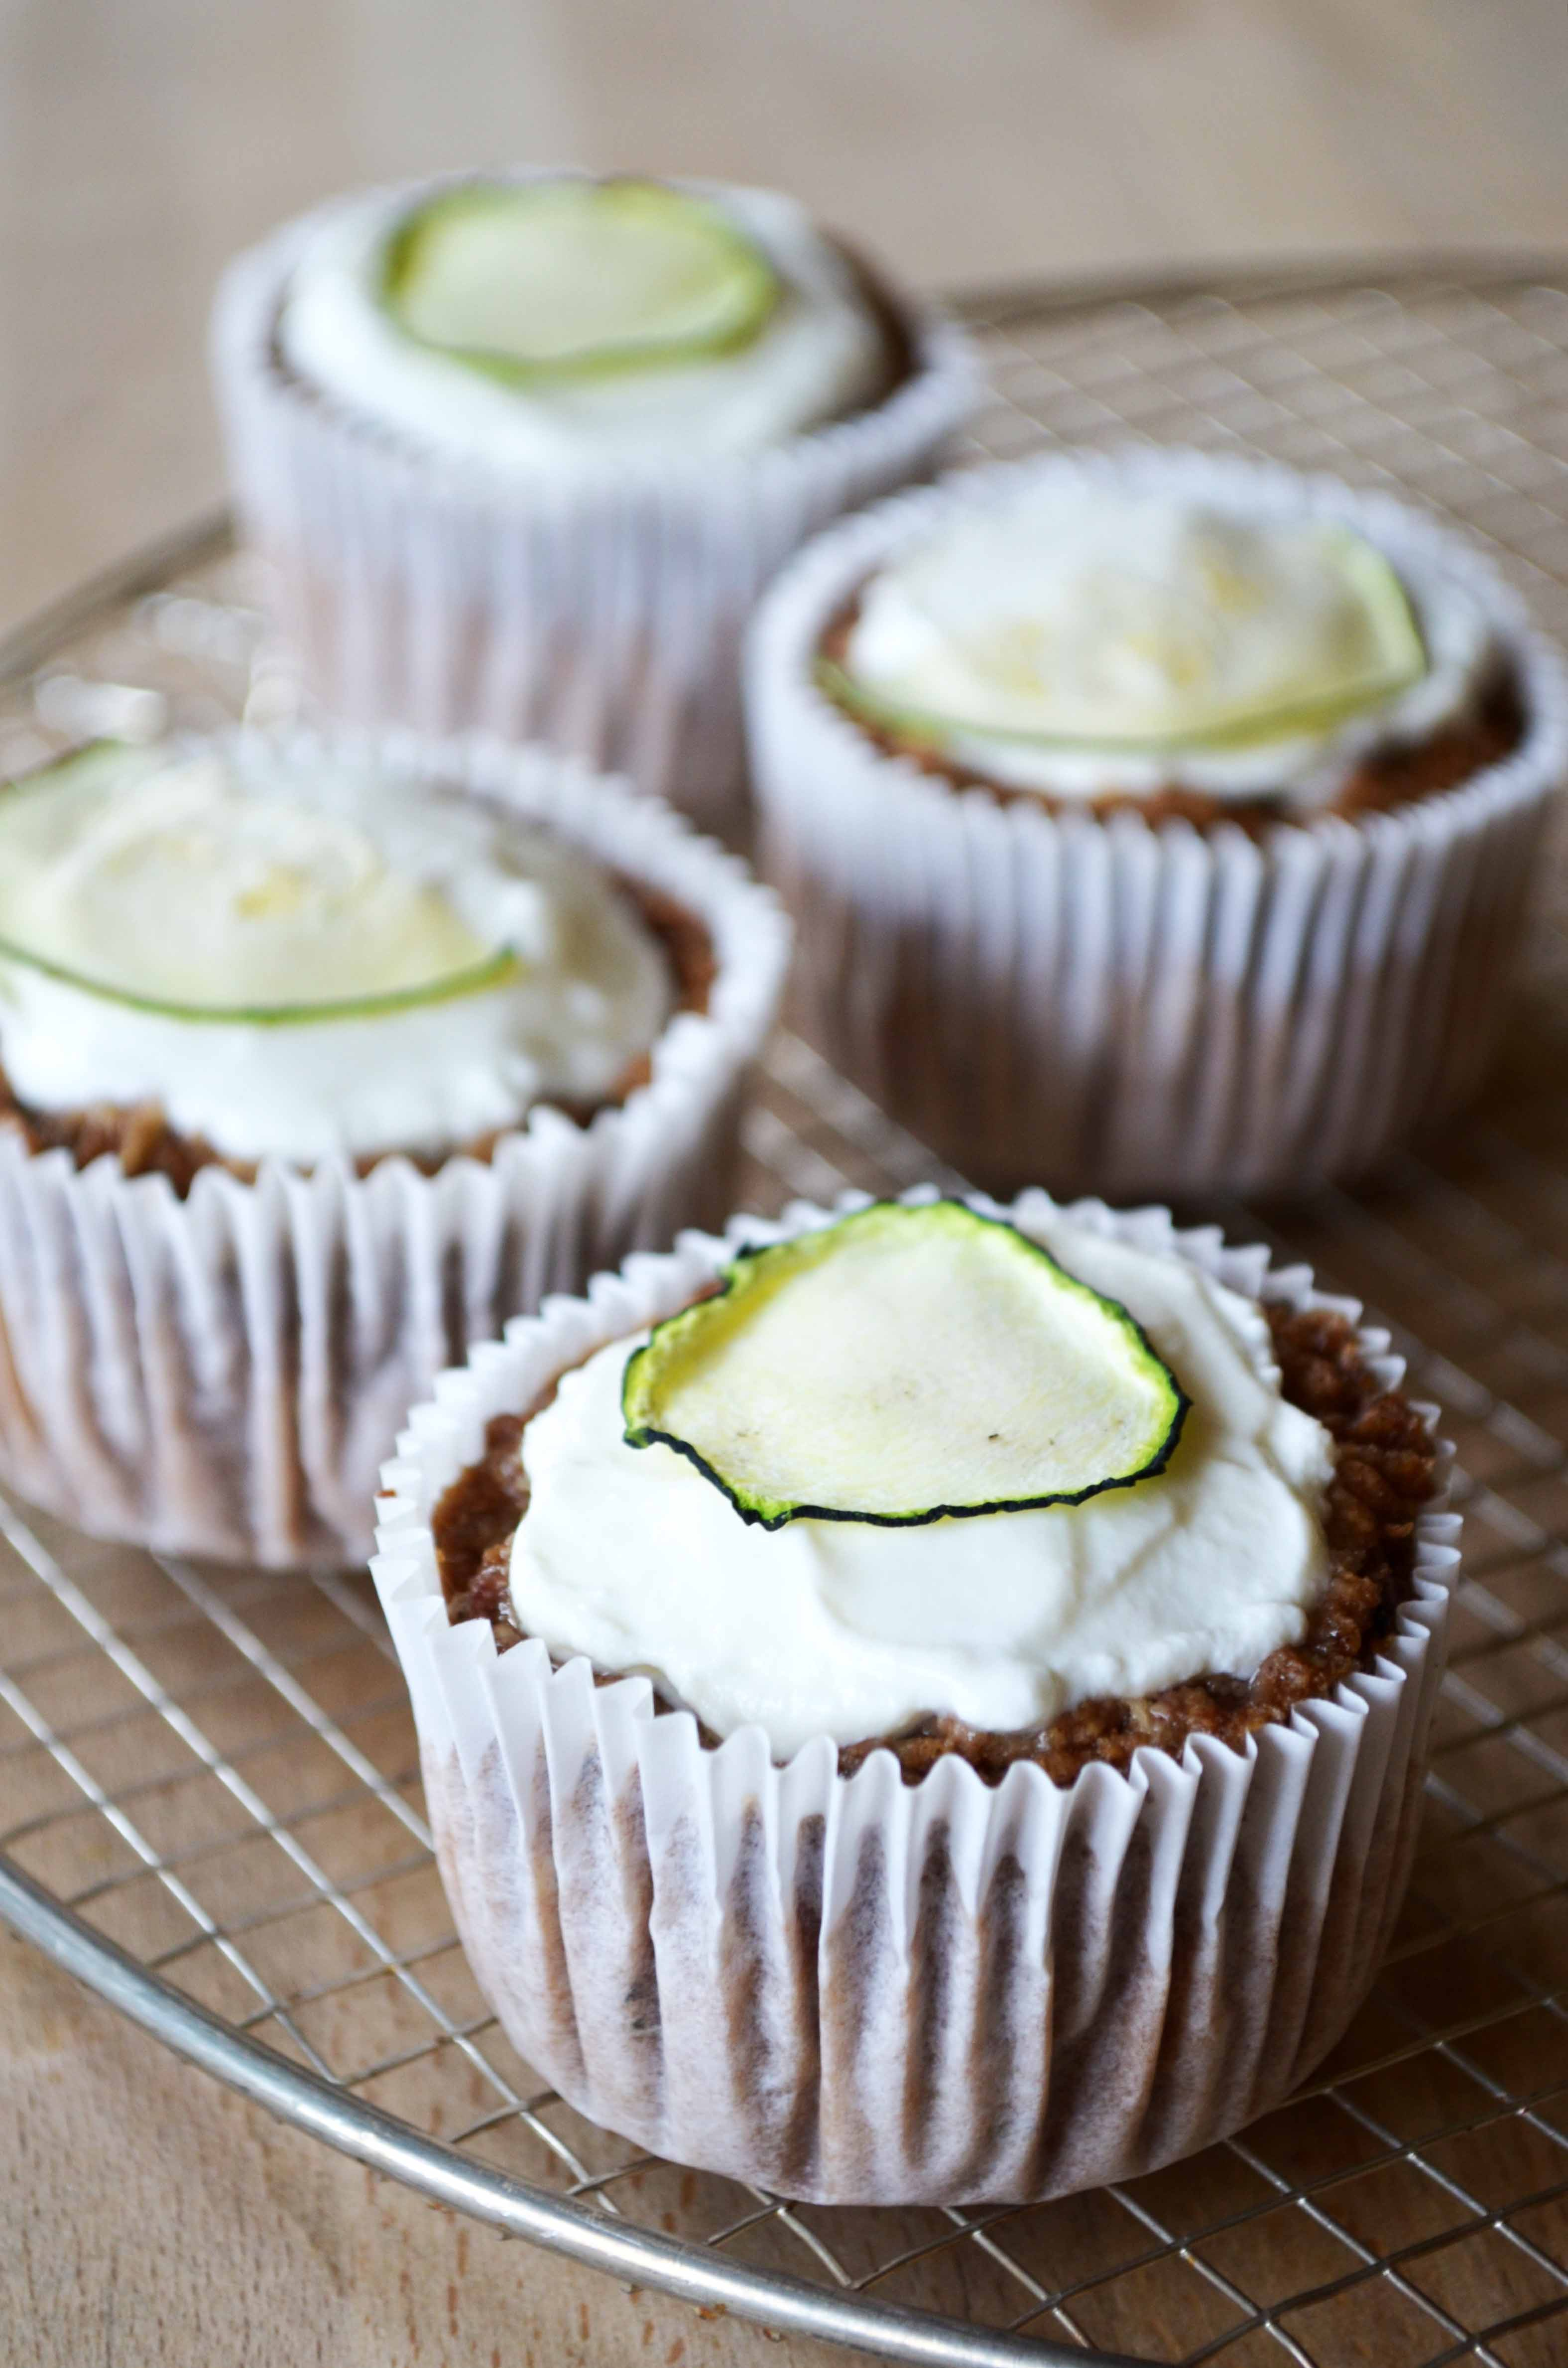 Spiced Zucchini Muffins with Apple – That Healthy Kitchen